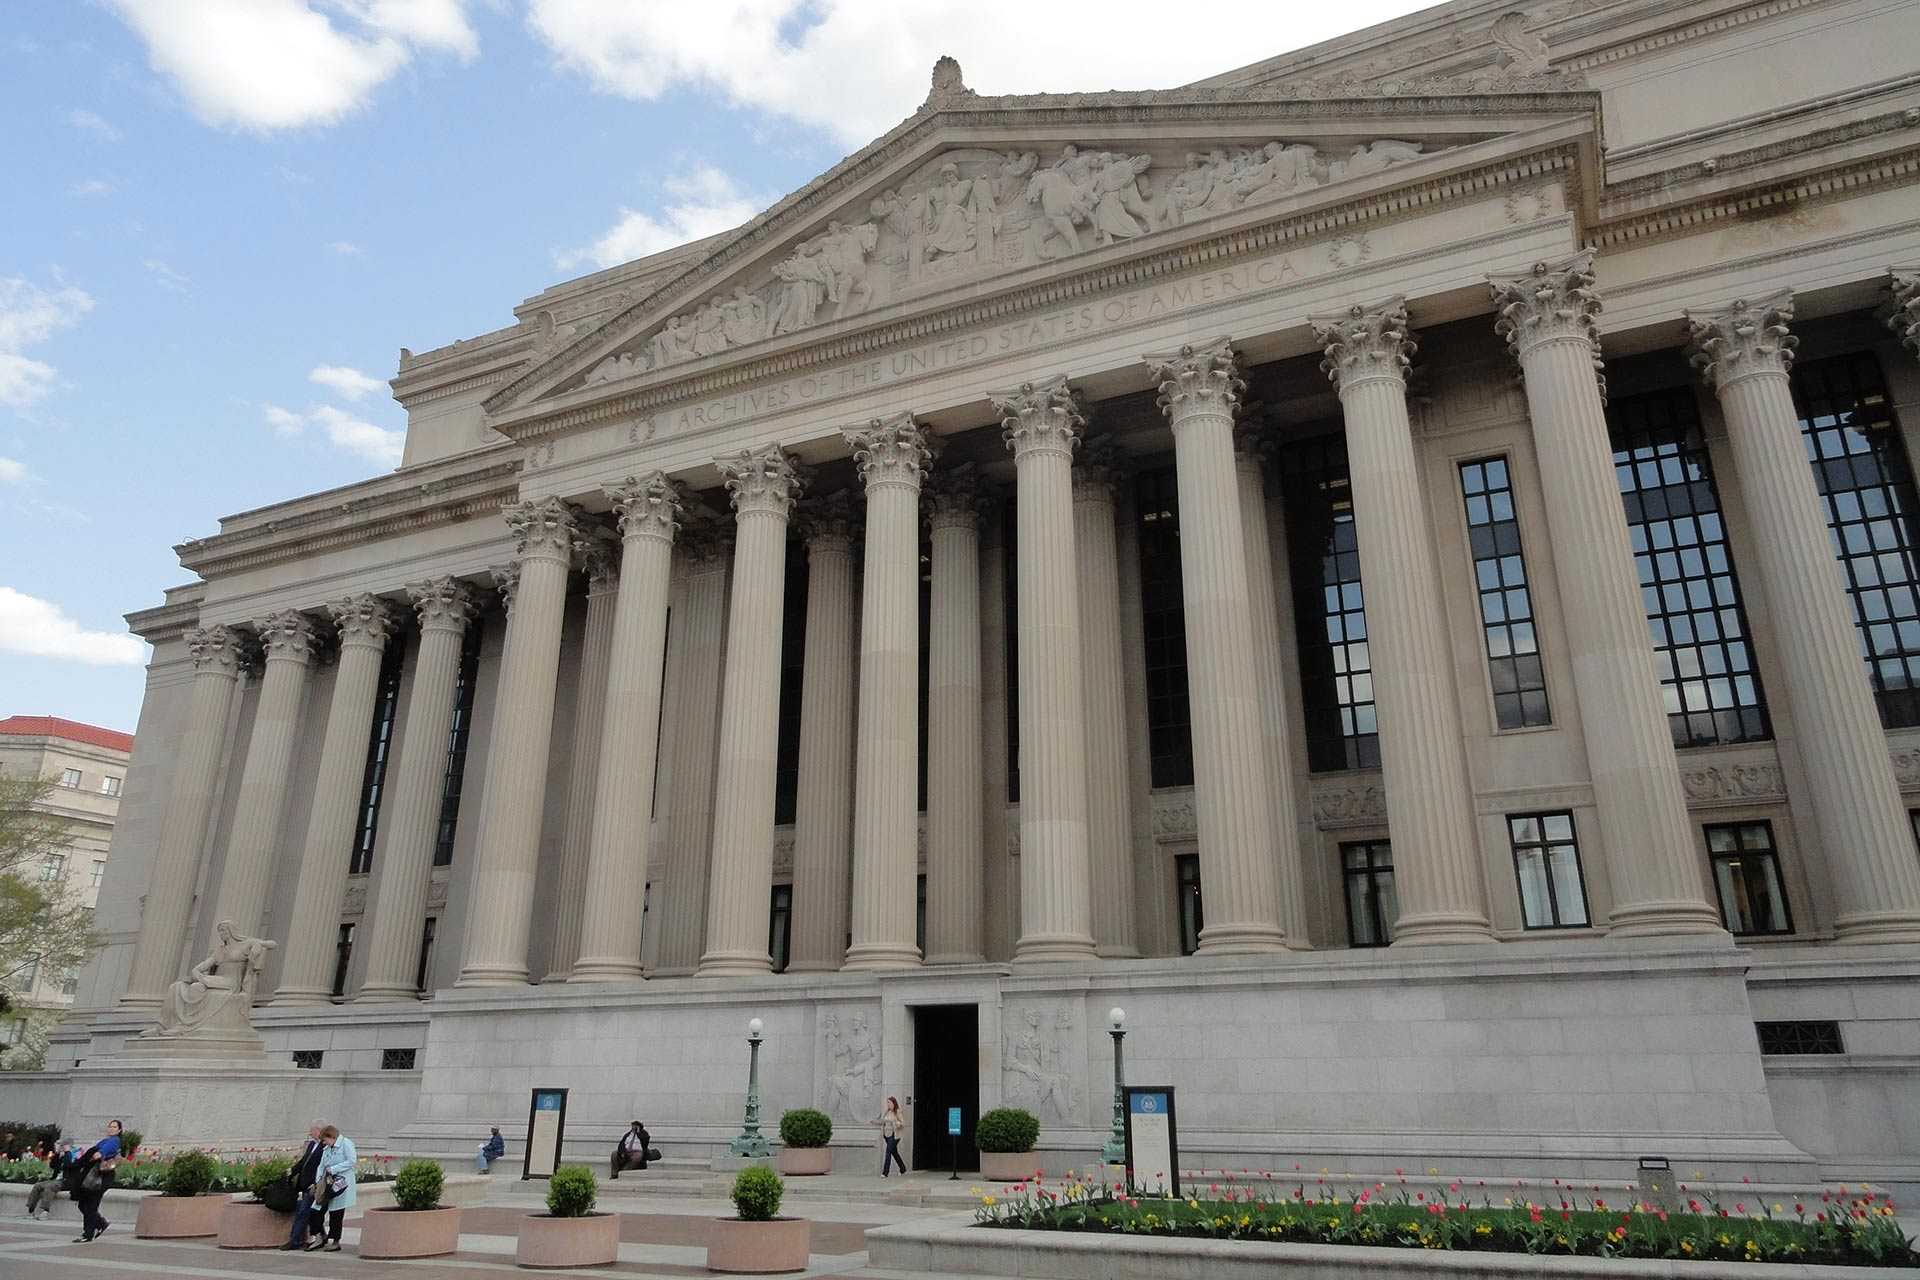 The National Archives Museum in Washington D.C.